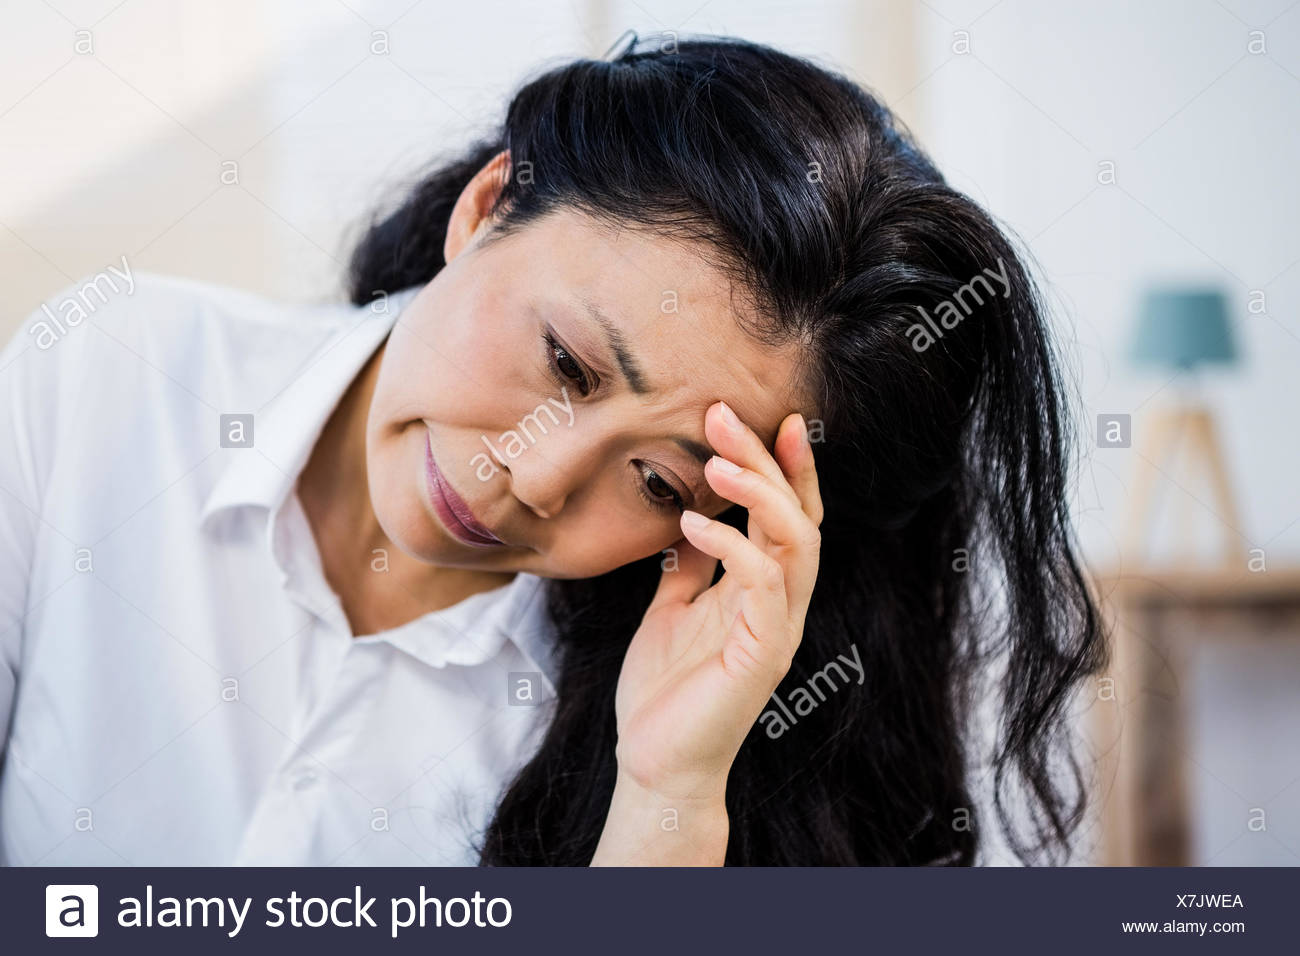 Concerné woman sitting at home Photo Stock